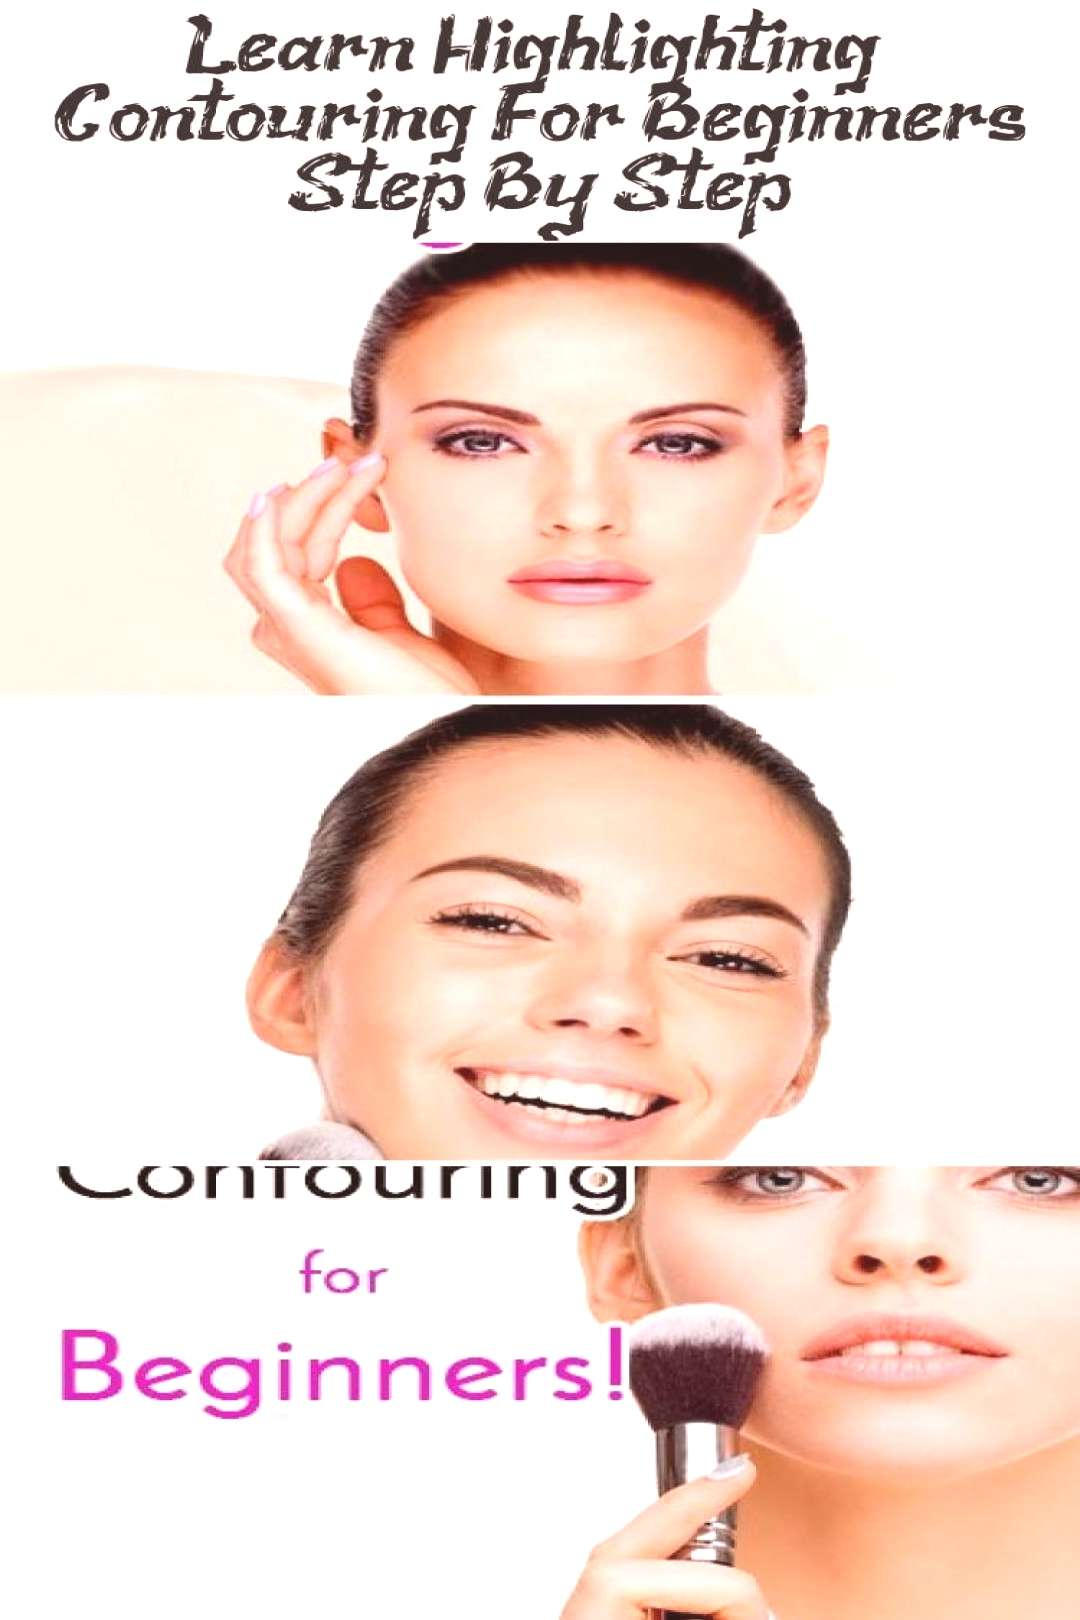 Learn Highlighting amp Contouring For Beginners Step By Step… - Make-Up - Highl...#beginners